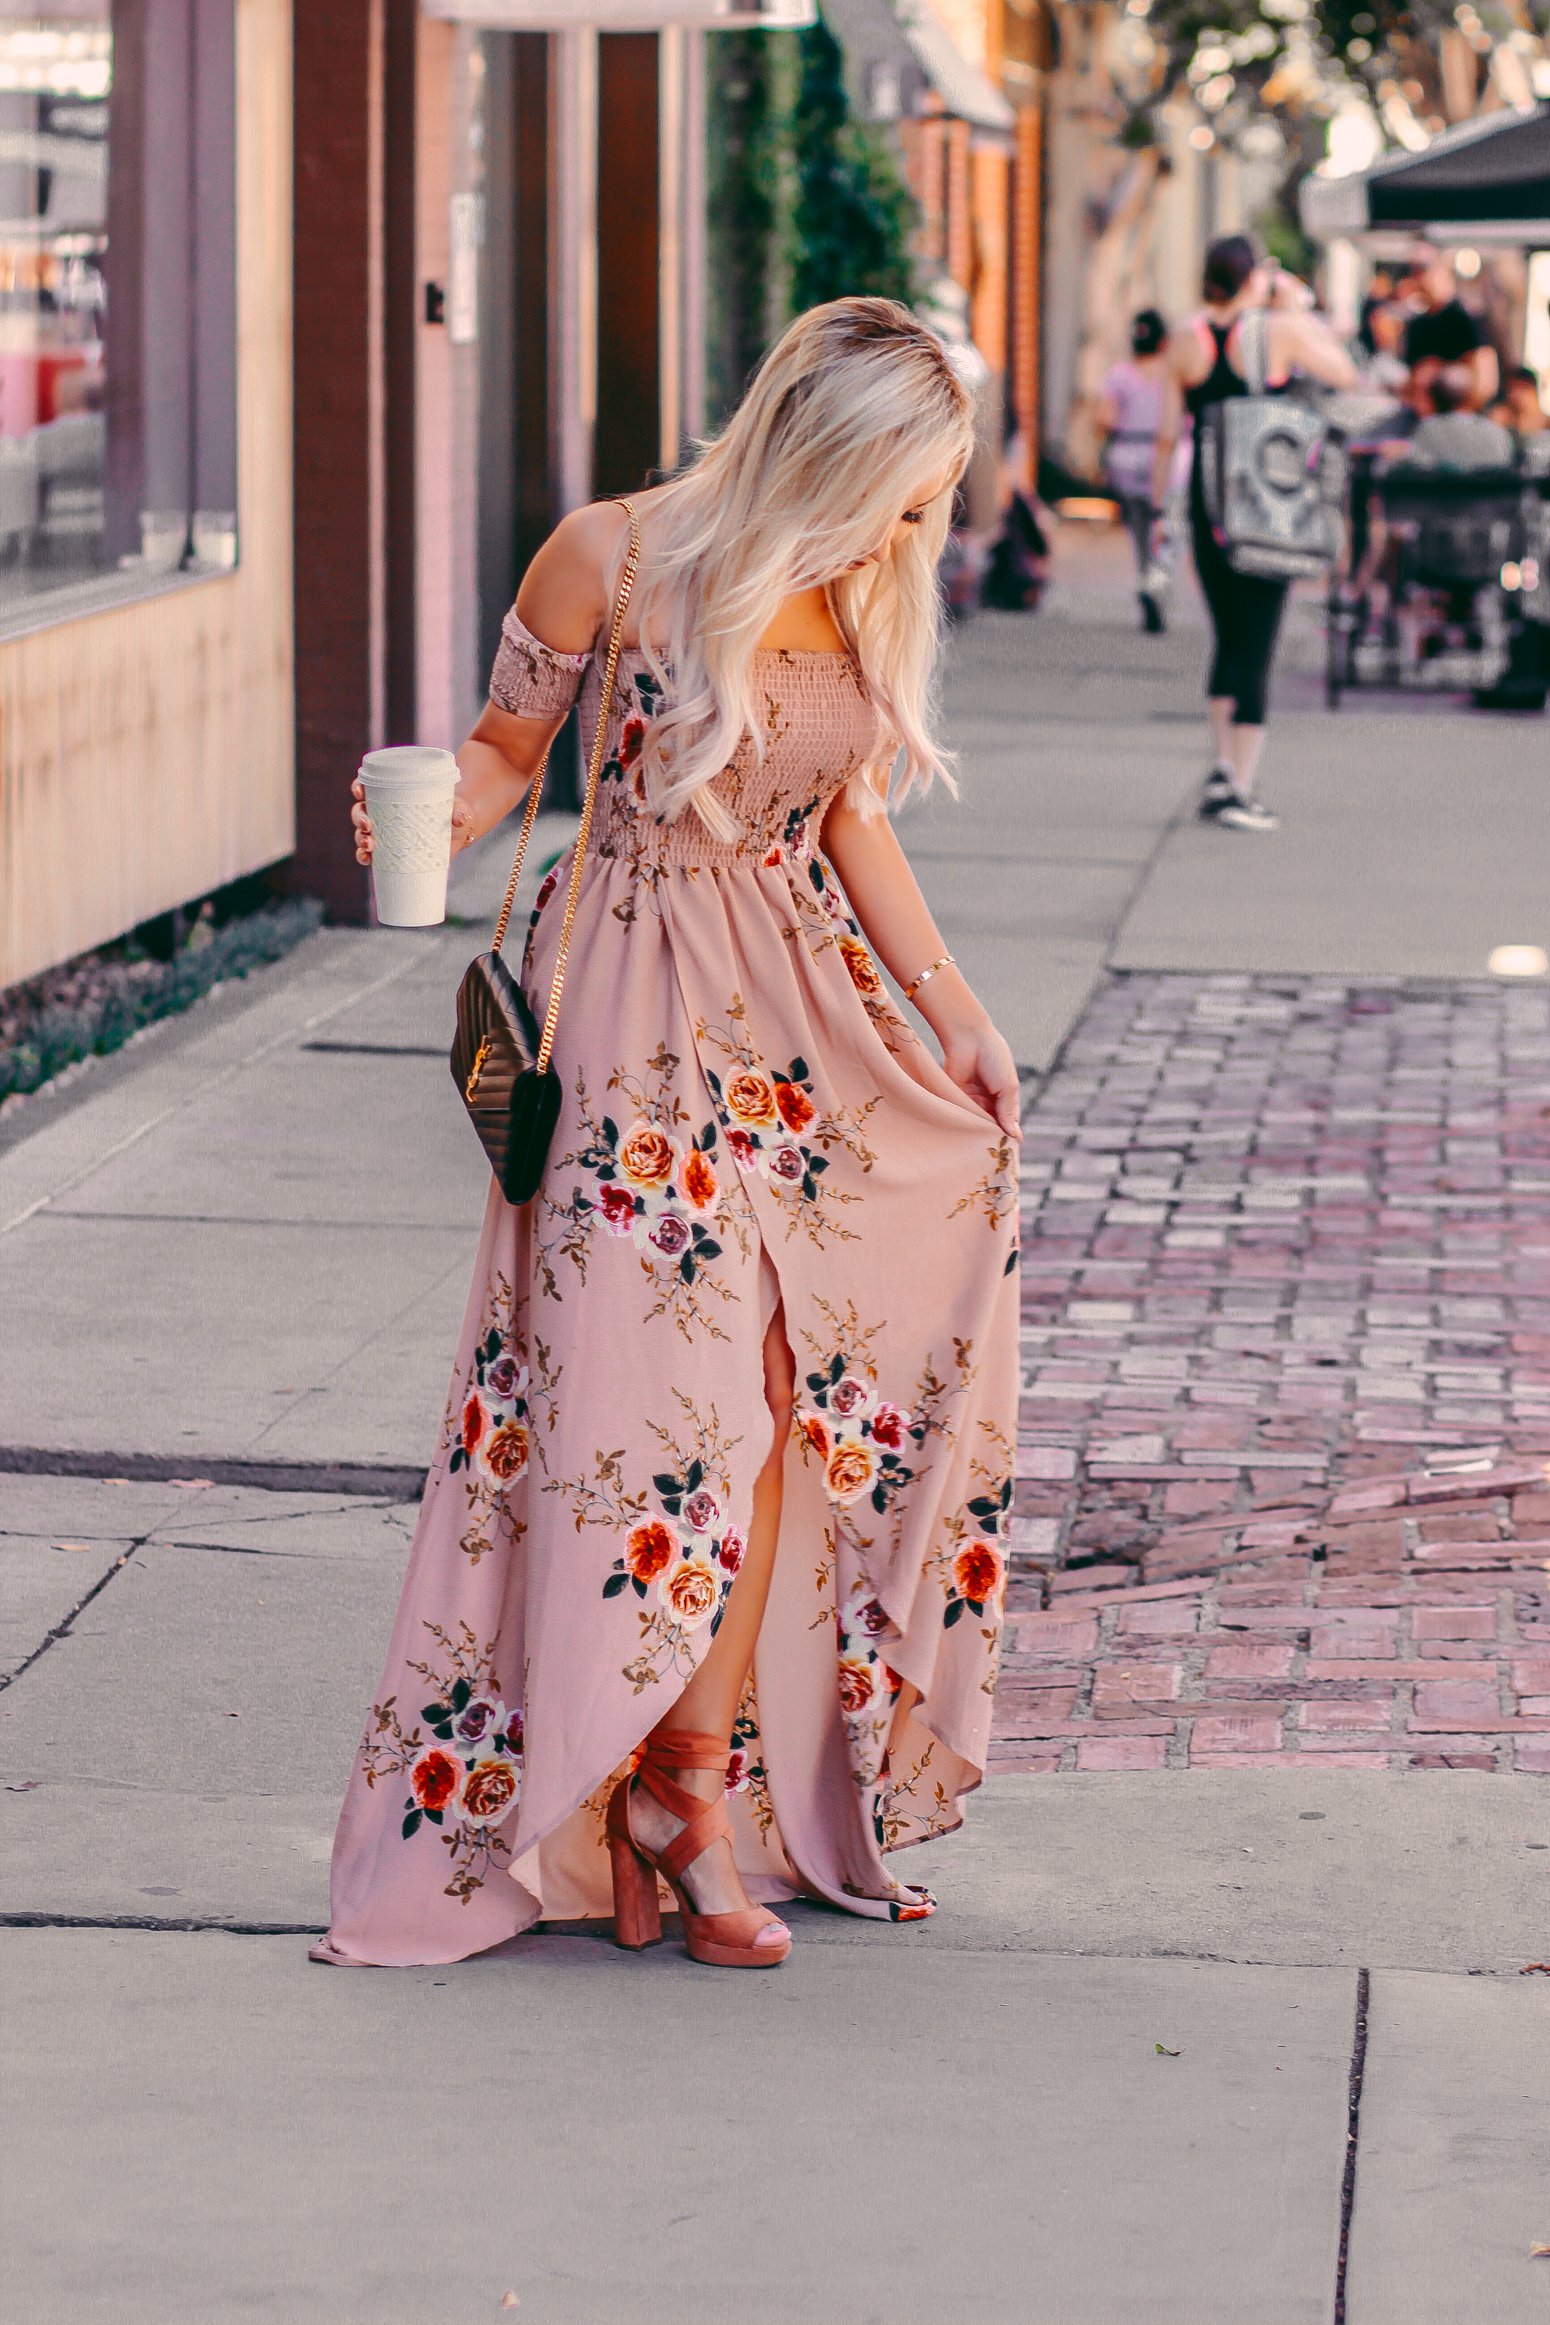 Blondie in the City | Fall in LA | Blush Floral Dress | YSL Bag